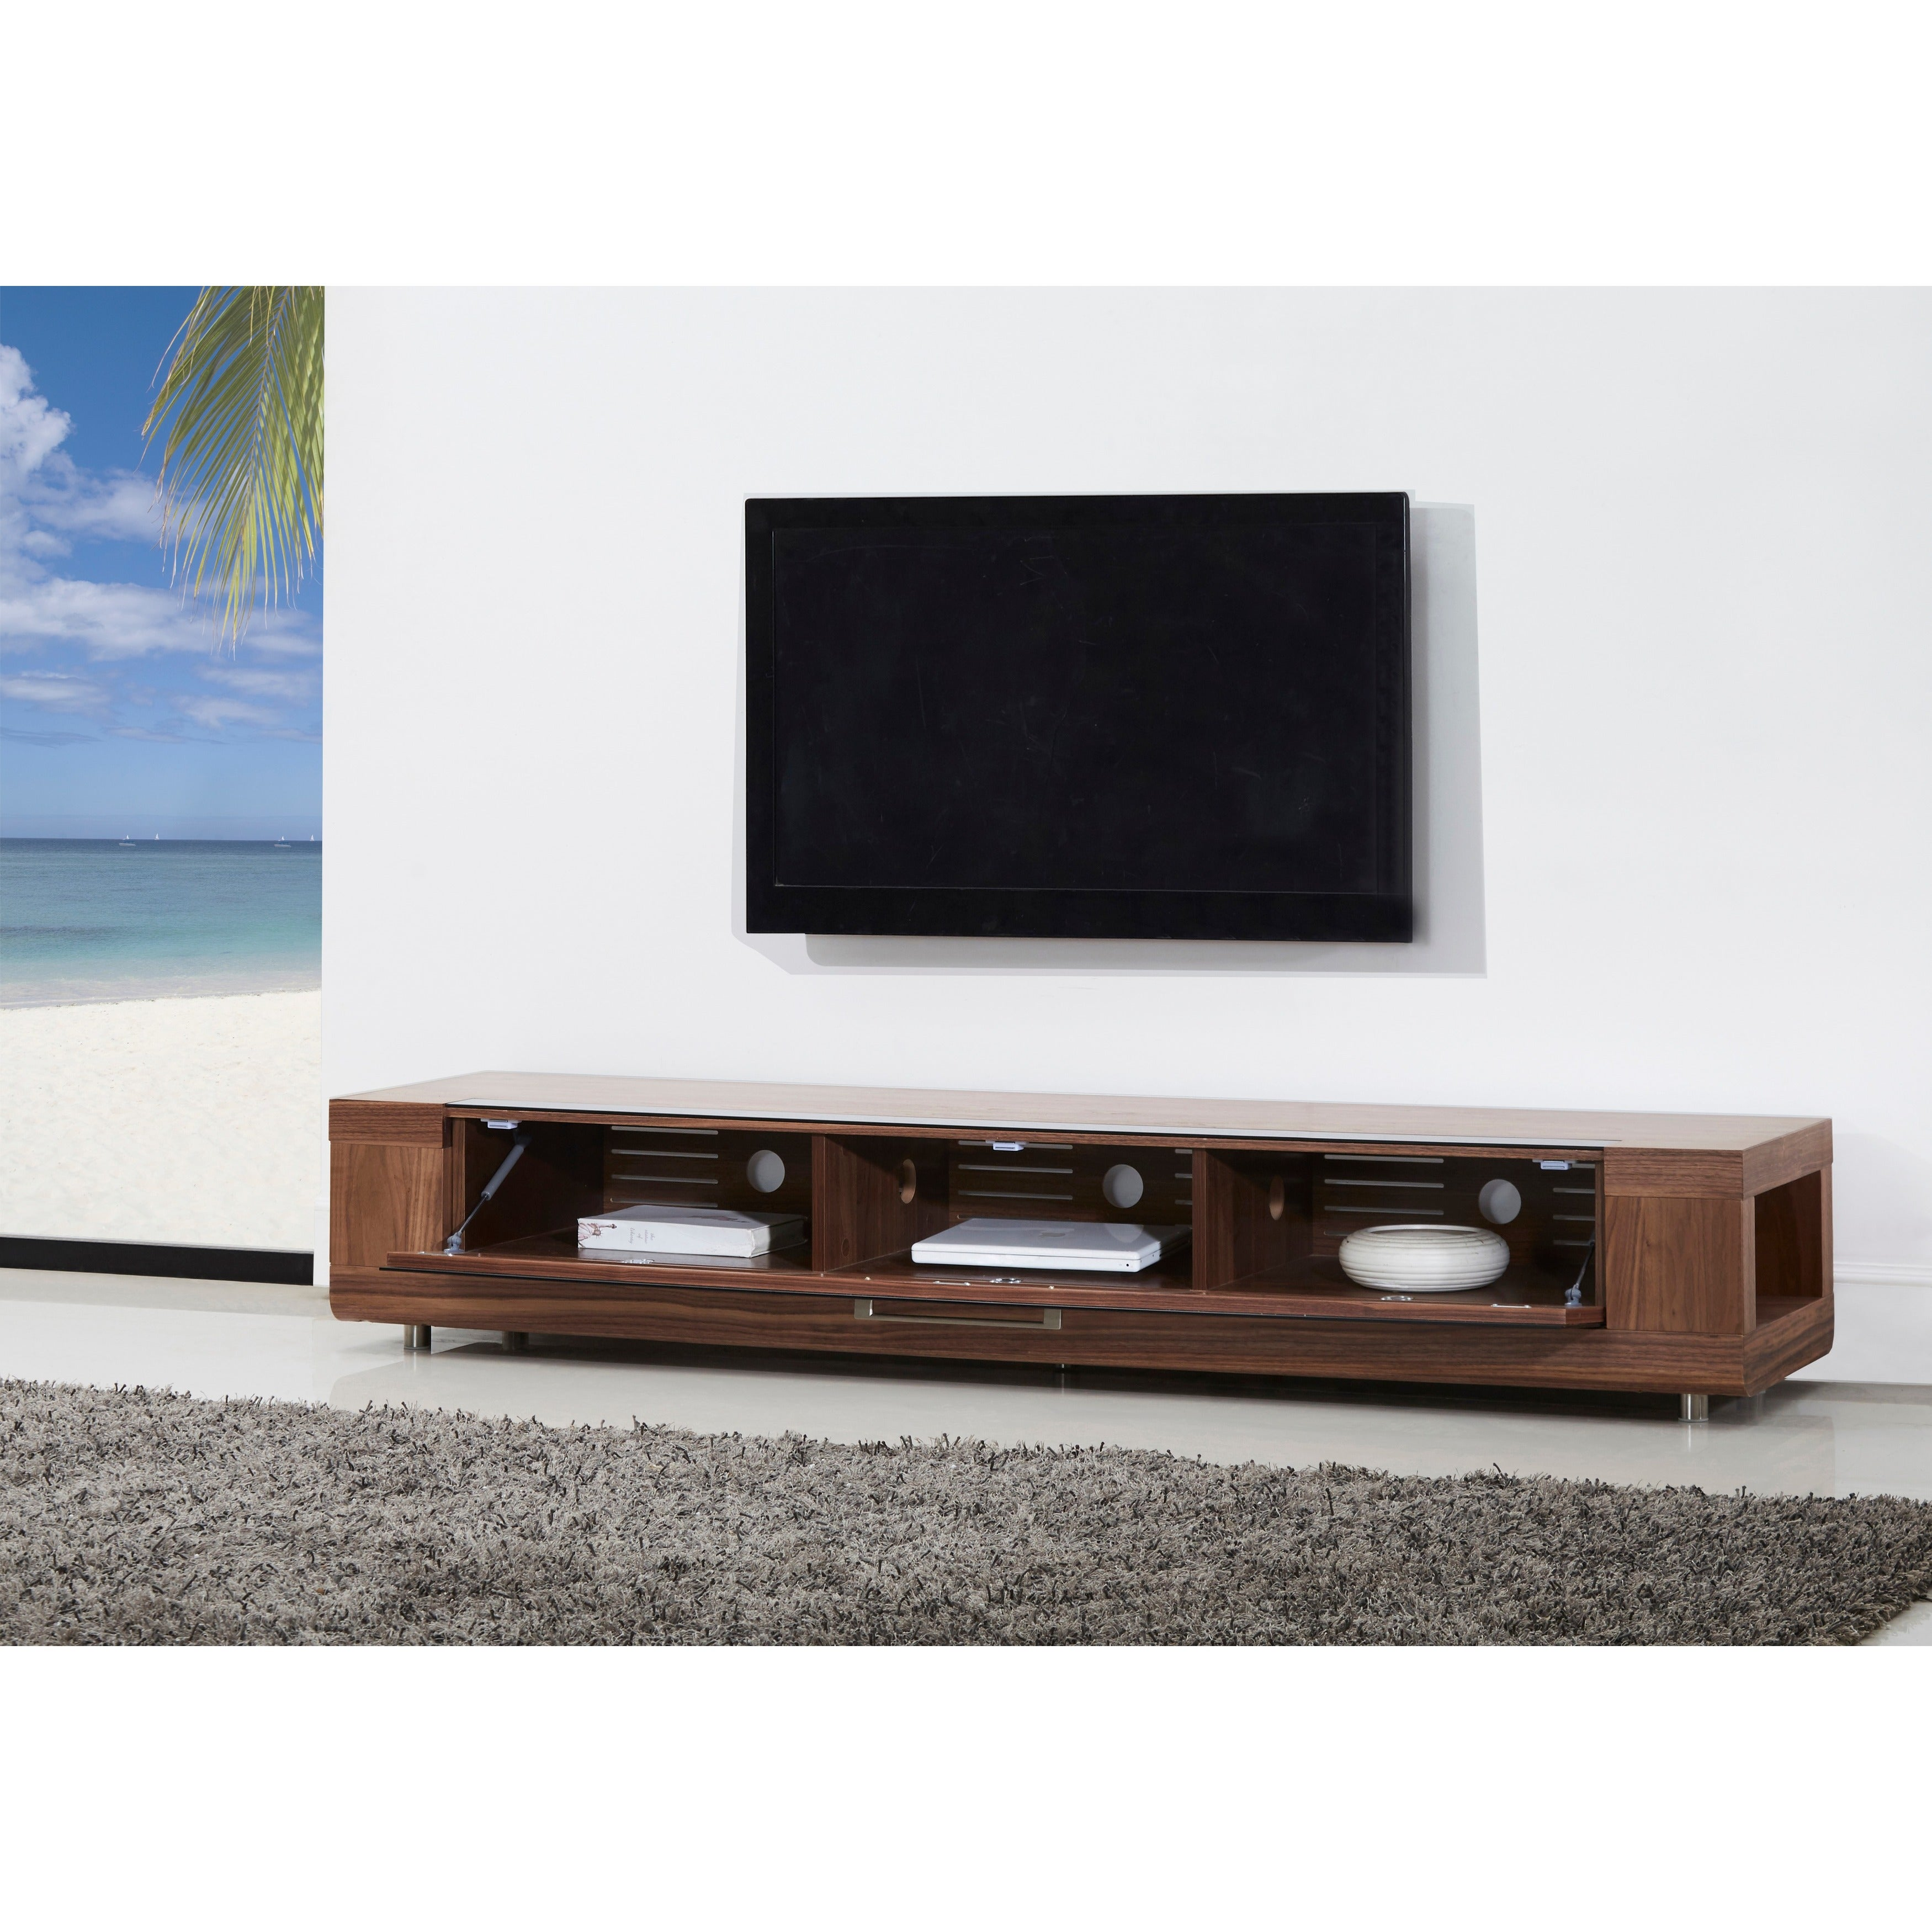 Shop Roma Remix IR-reymote compatible TV Stand - Free Shipping Today ...